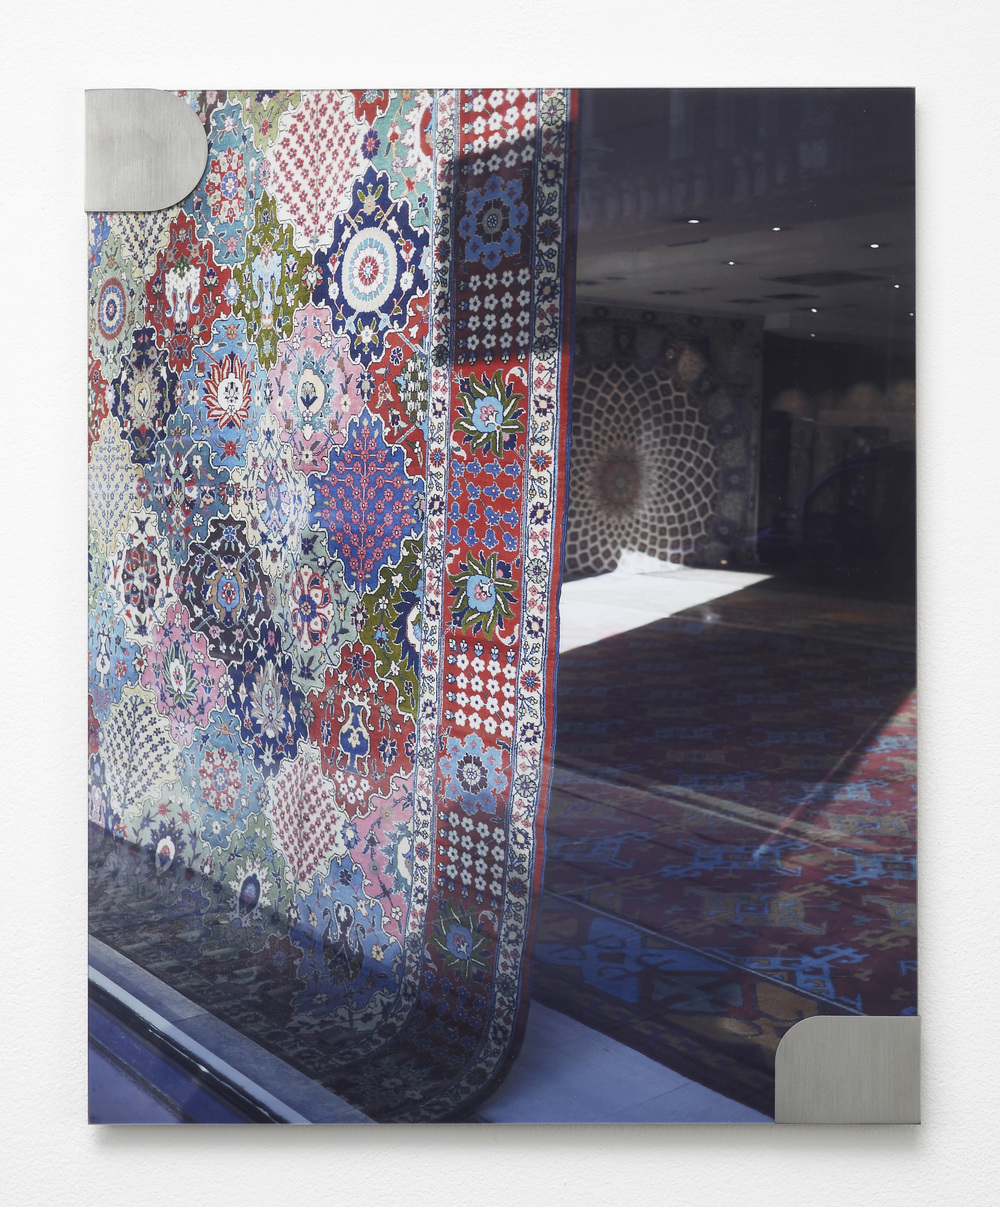 Nicole Wermers Carpets and Glass #1 2012 C-print, stainless steel clips, clip frame 50 x 40 cm